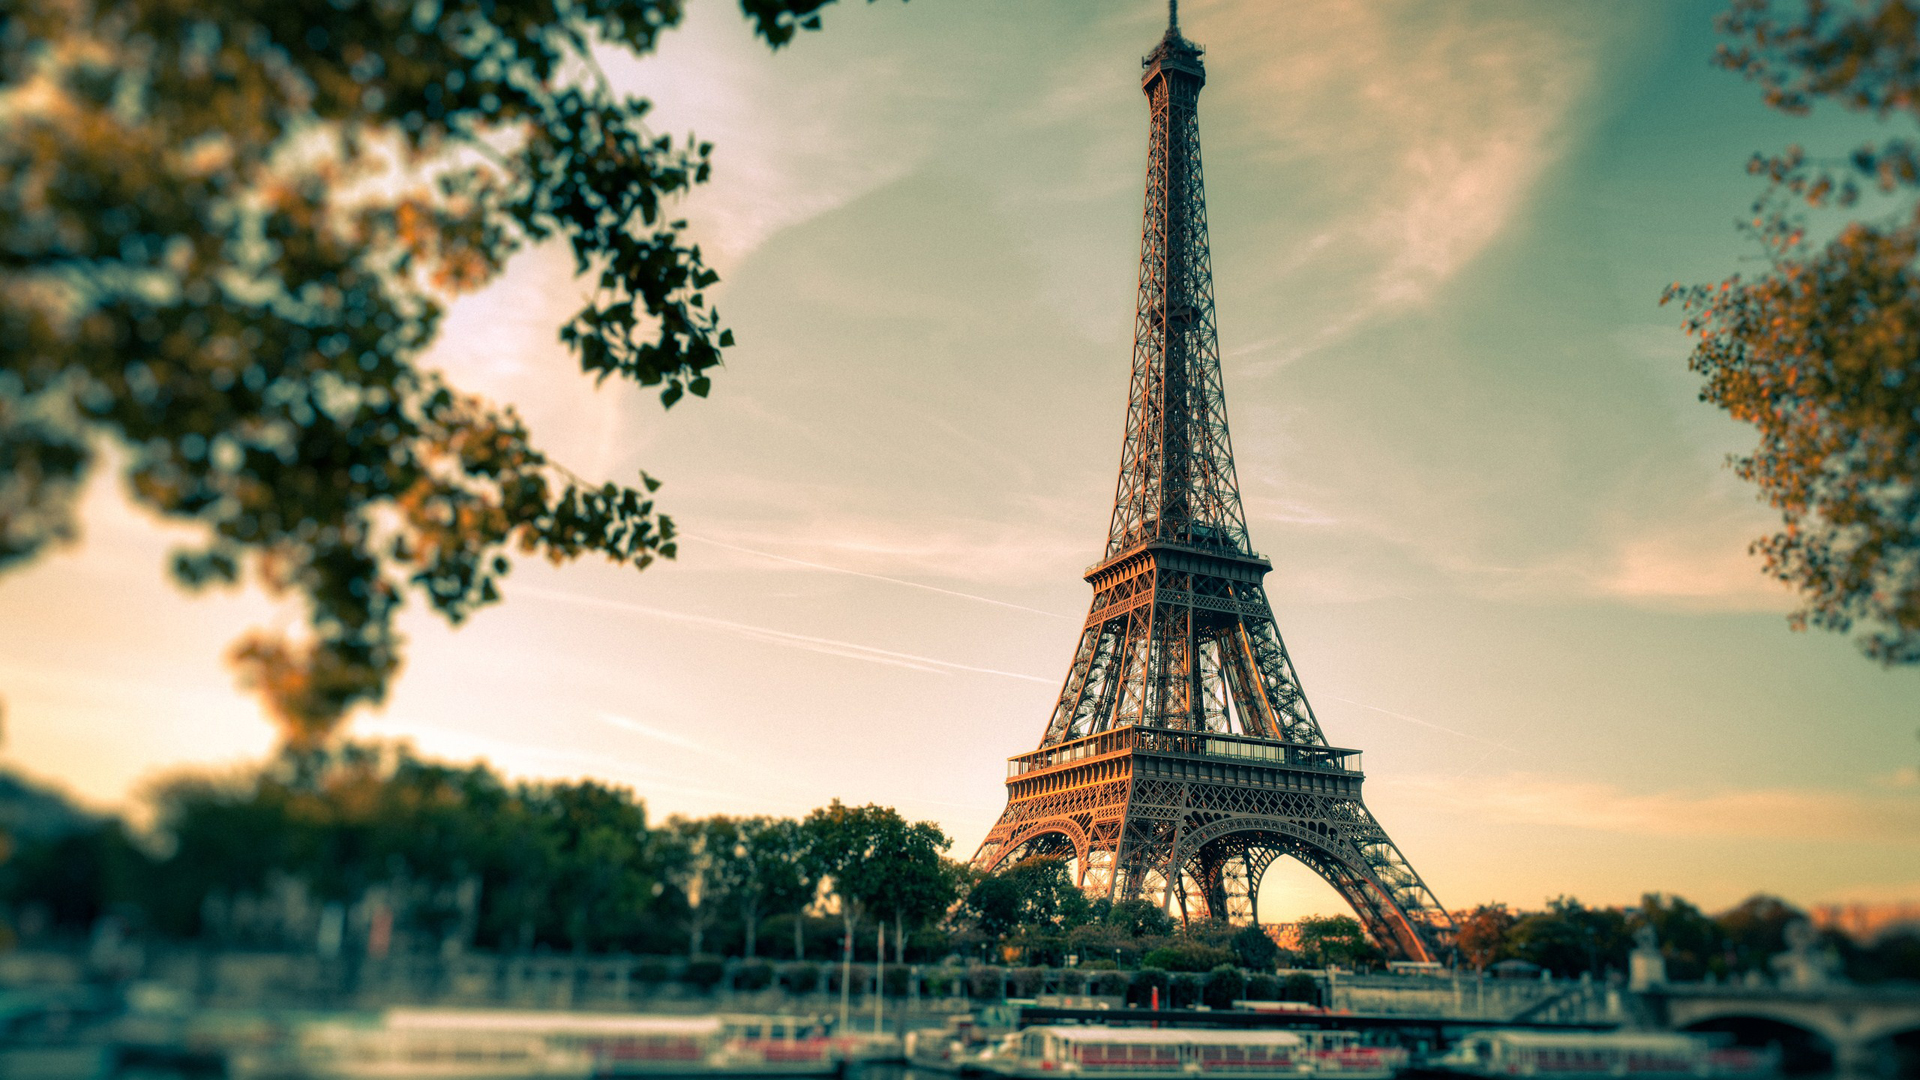 free hd elegant france paris eiffel tower wallpaper download